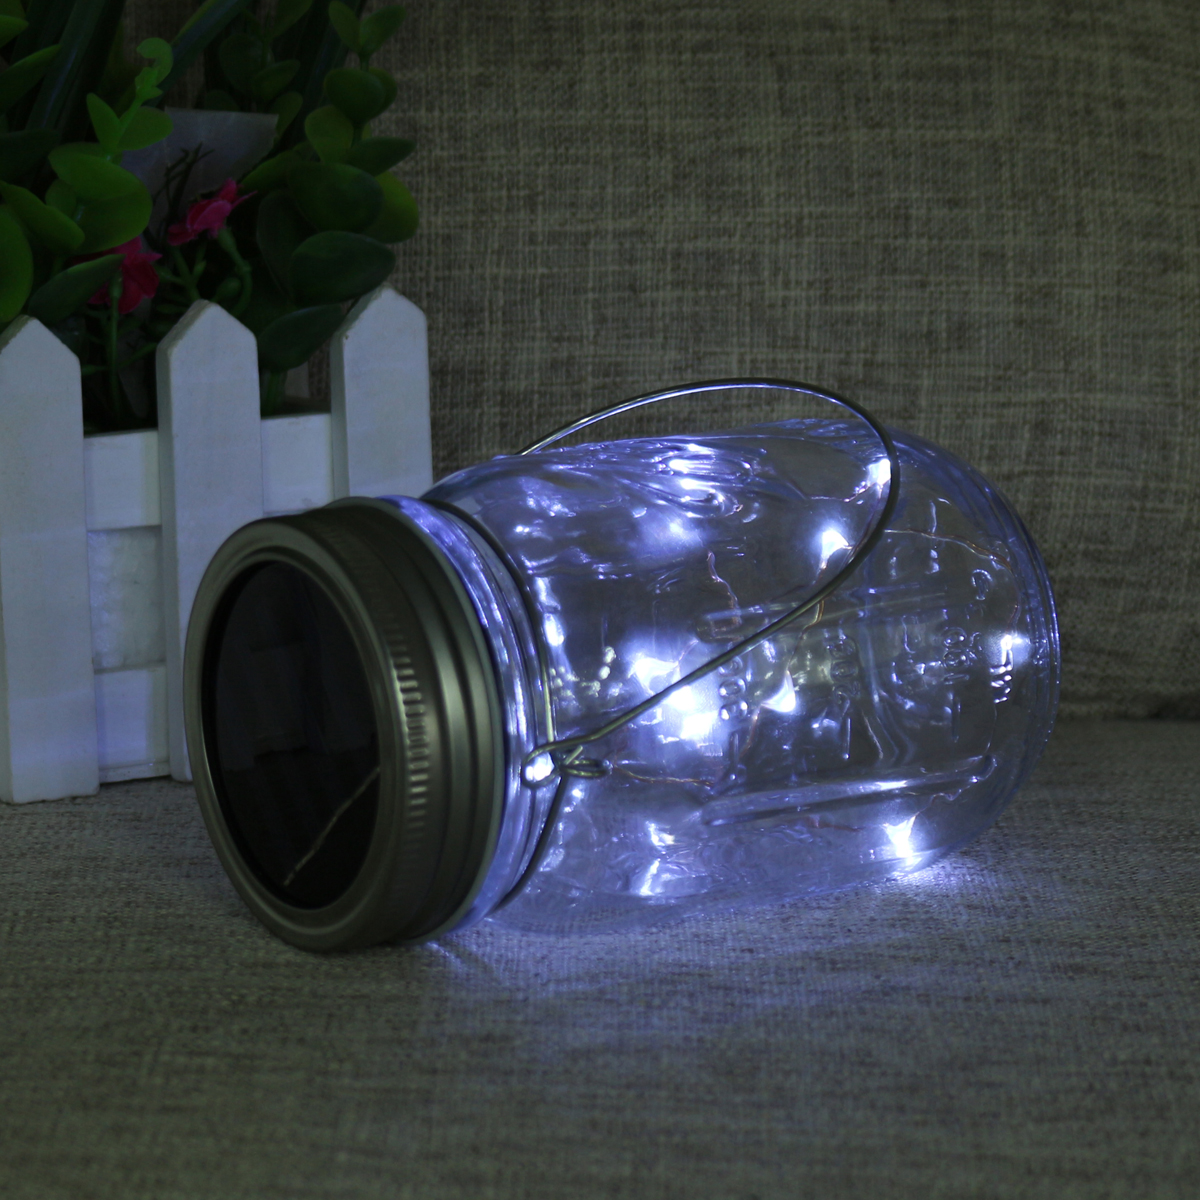 10 LED Solar Glass Hanging Rope Jar Light Lamp Outdoor Garden Table Decor